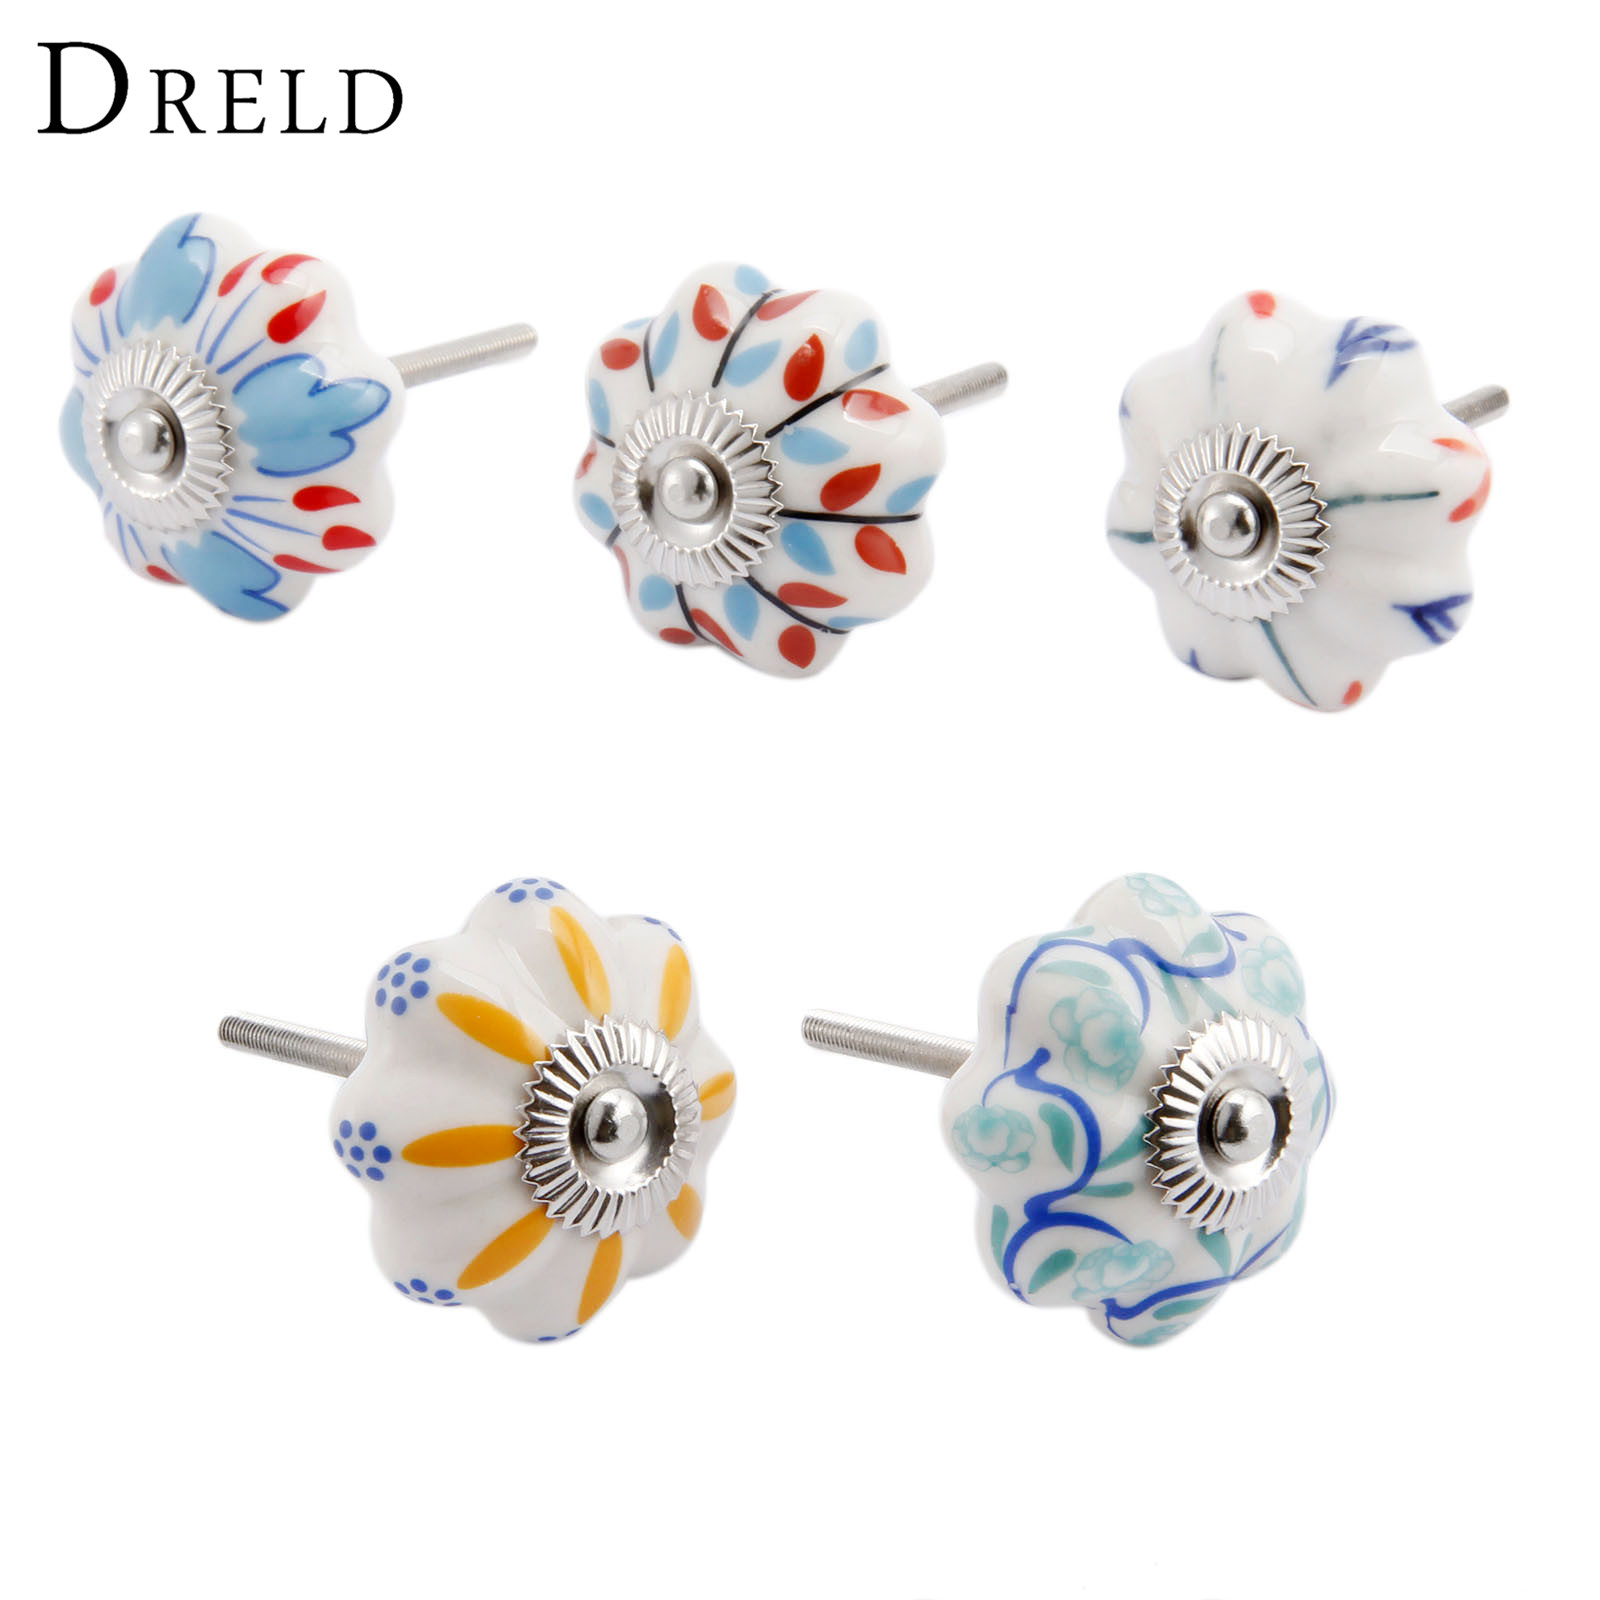 DRELD Vintage Furniture Handle Flower Ceramic Knobs and Handles Door Cupboard Drawer Kitchen Pull Knob Hardware